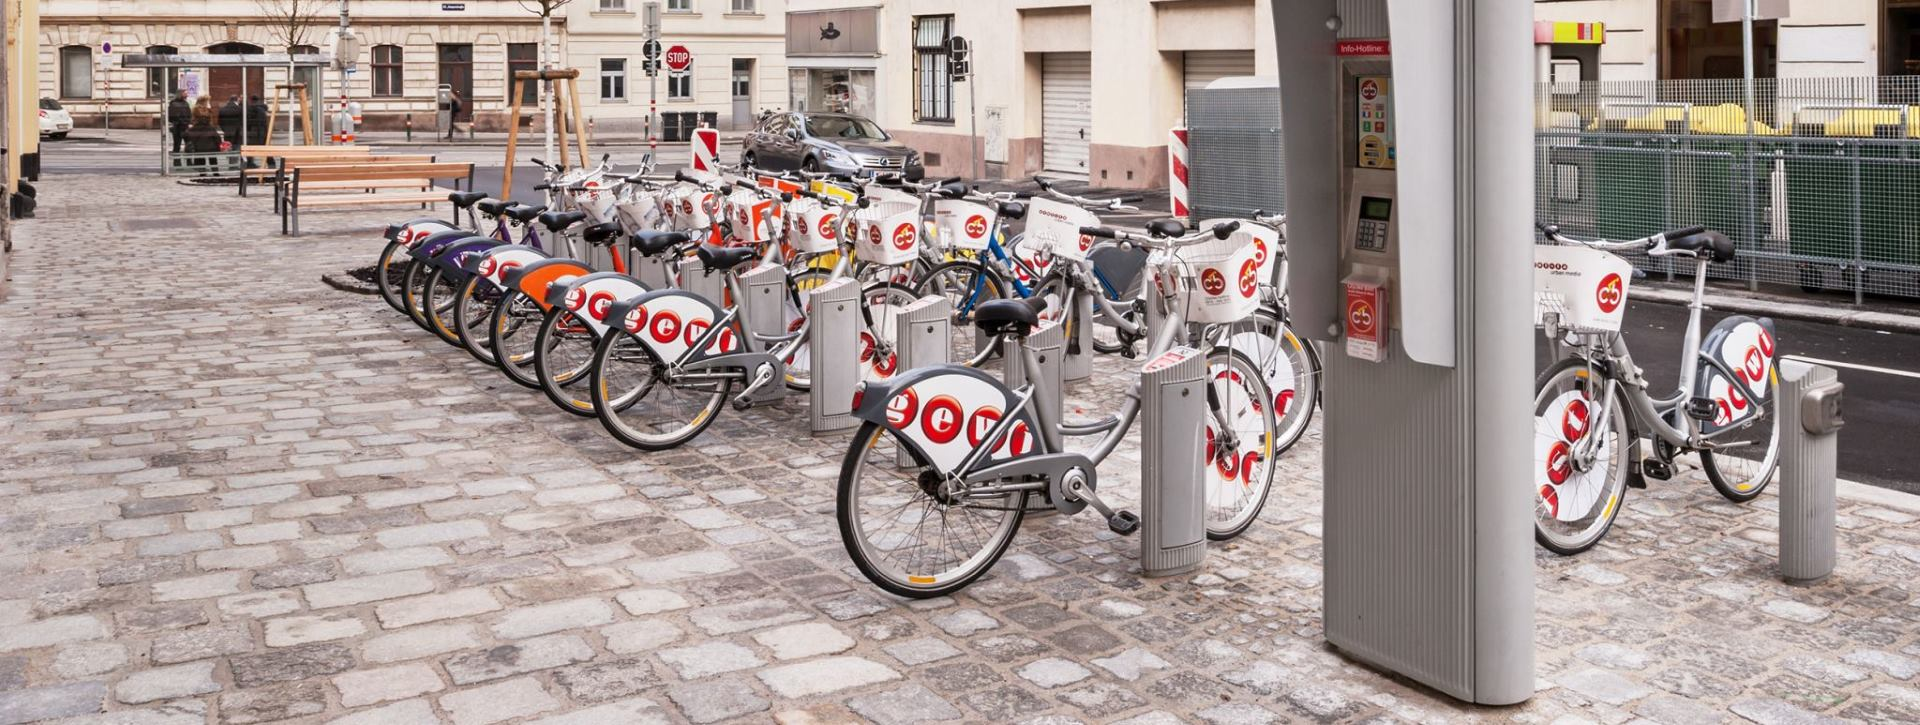 Globalni Bike Sharing Atlas za 460 gradova